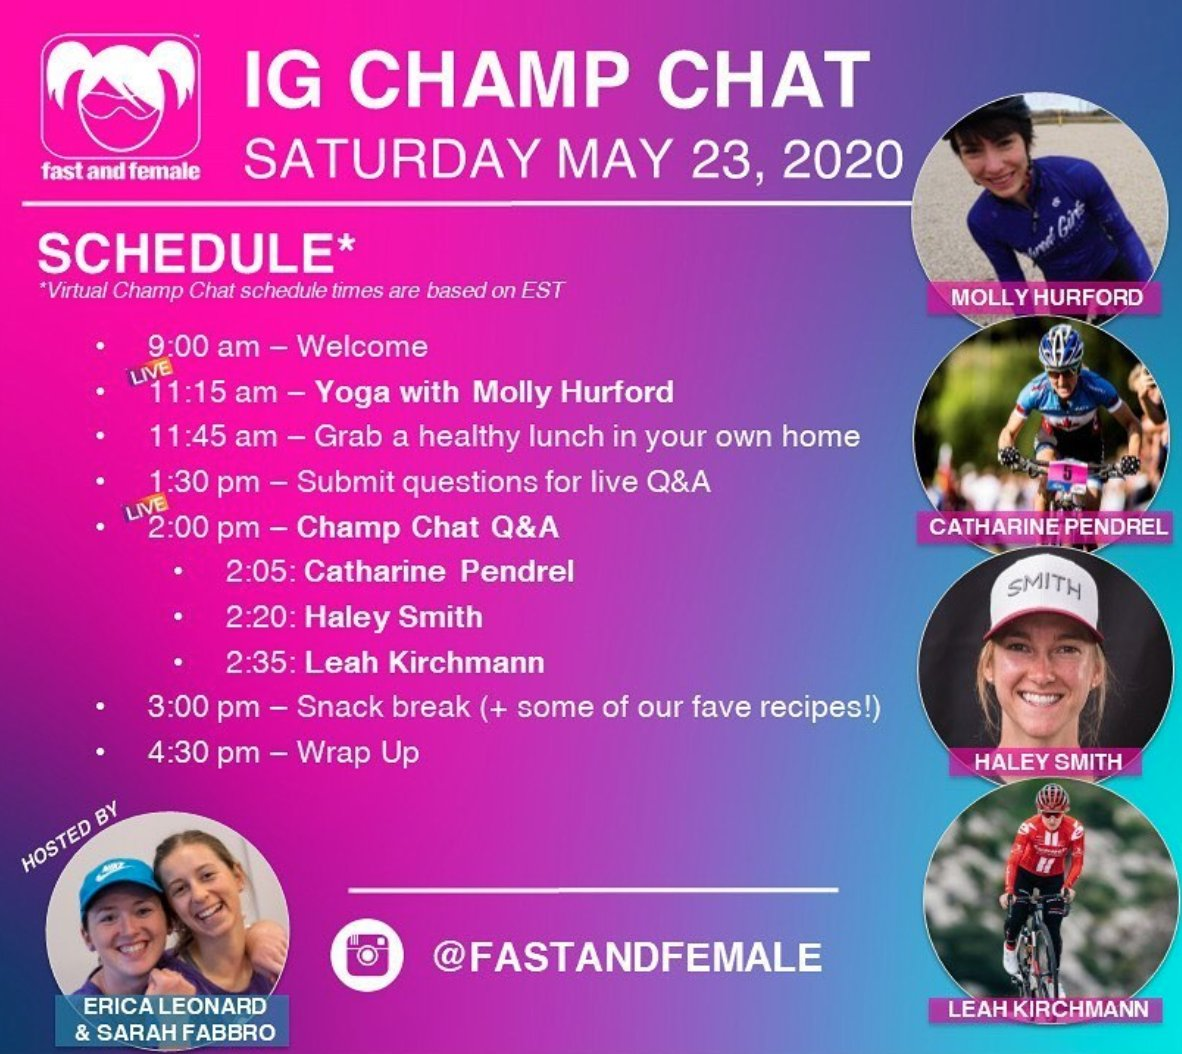 test Twitter Media - You don't want to miss @cpendrel's, @hale_smith's and @L_Kirch live Q&A on the @FastandFemale Instagram account today starting at 2 pm. Get your questions answered by these inspiring & powerful female role models! https://t.co/hIanAln2gi